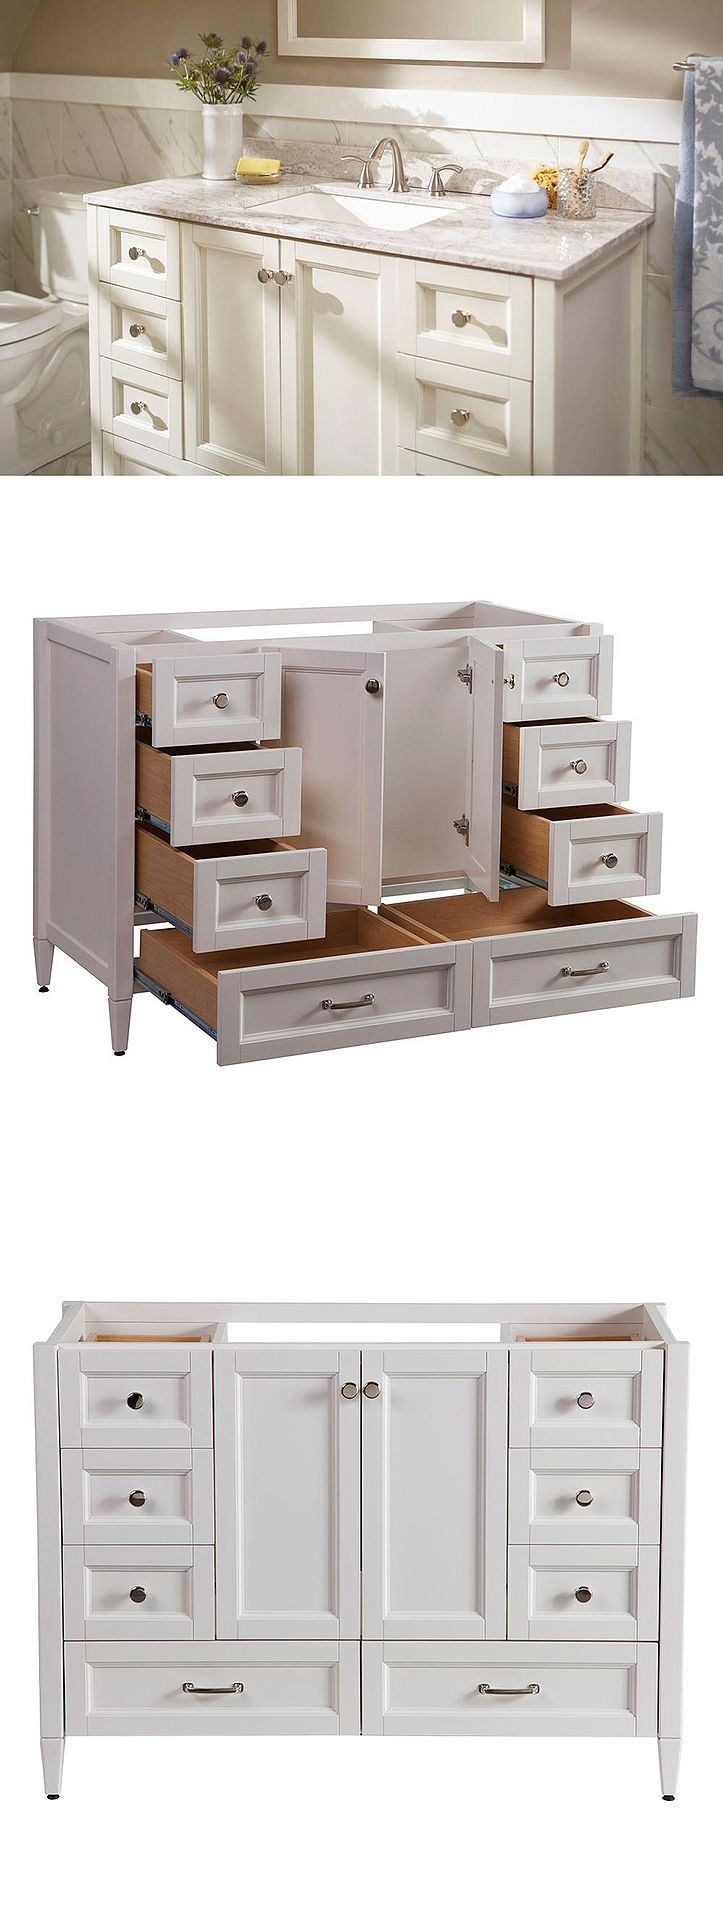 Asian bathroom vanity cabinets - Home Decorators Collection Claxby 48 In W Vanity Cabinet Only In Cream